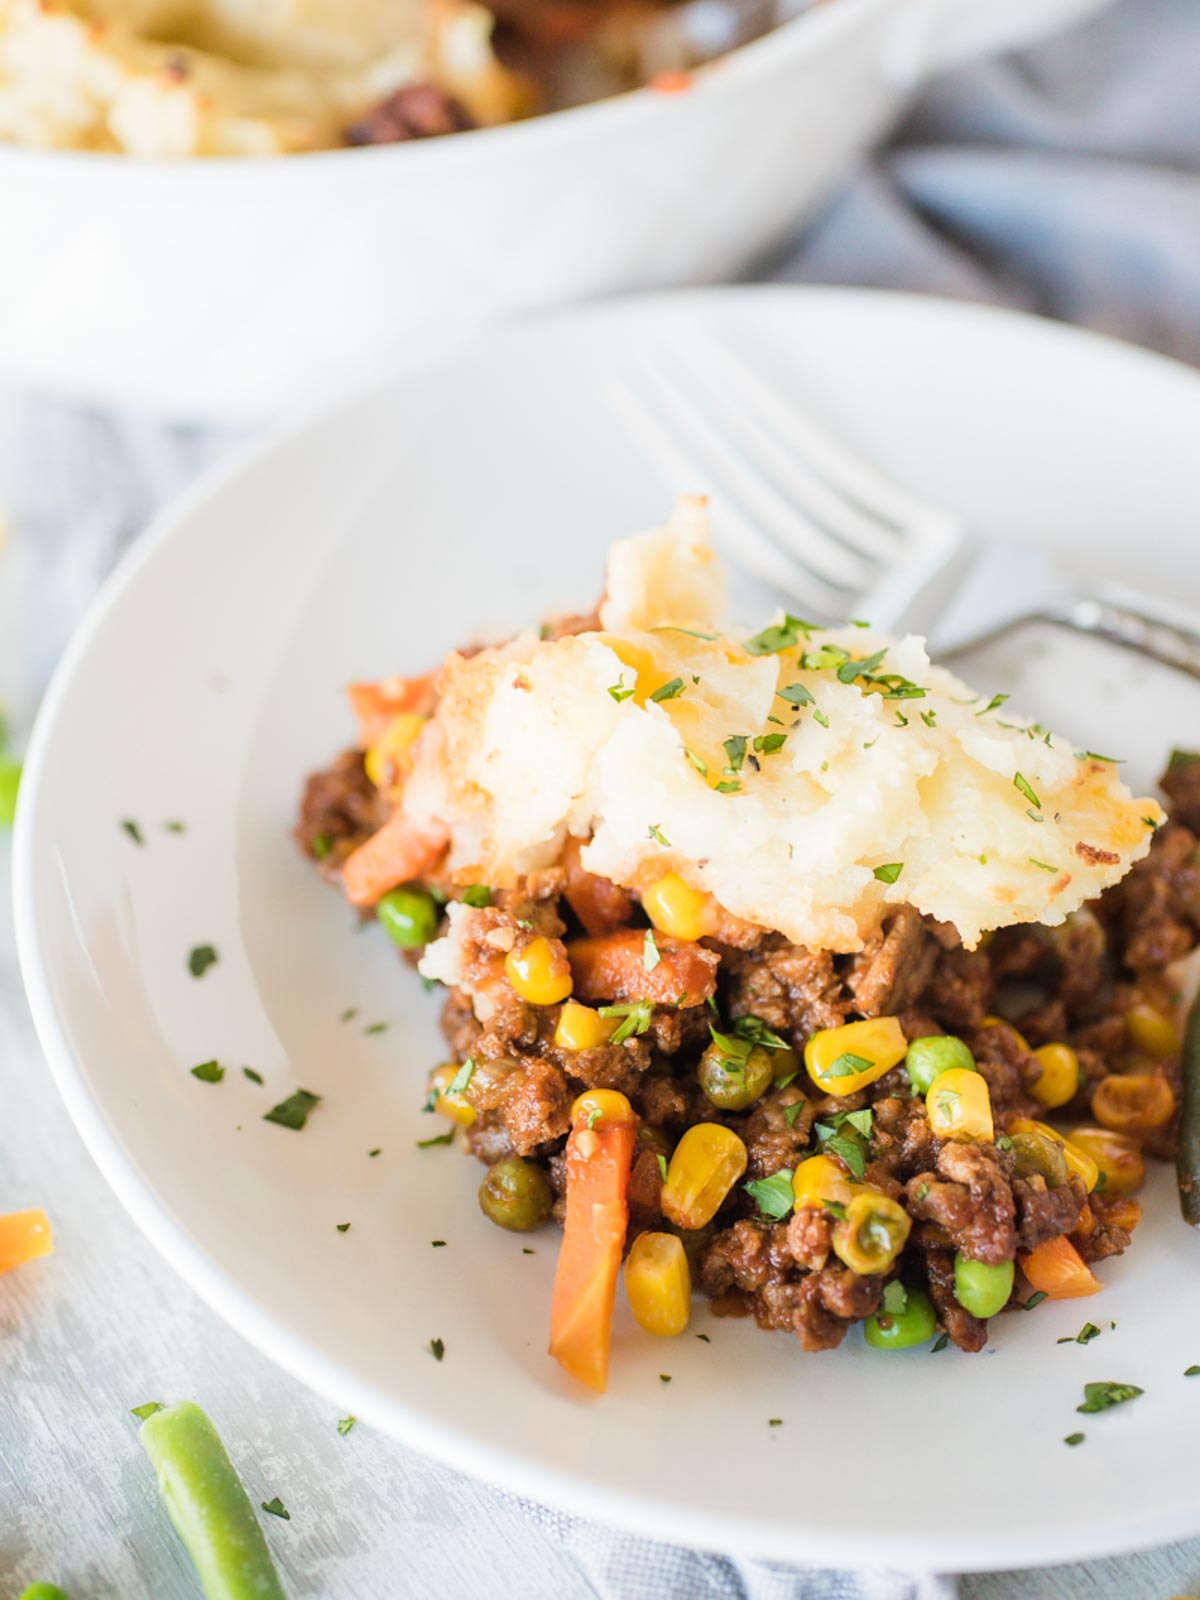 a serving of shepherds pie in a white shallow bowl